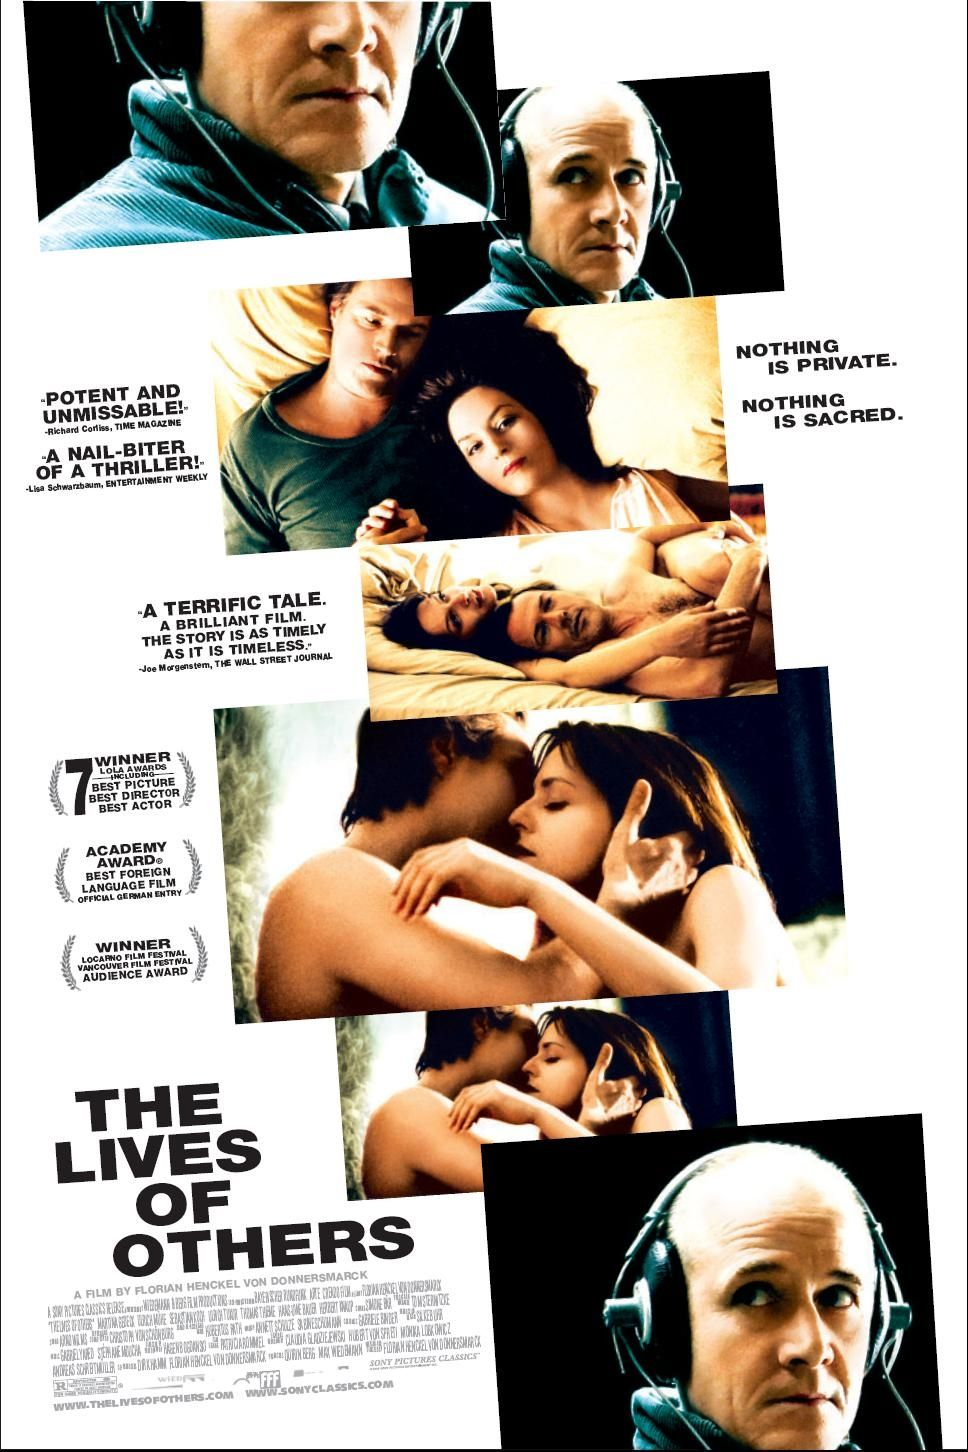 Das Leben der Anderen (2006) [The Lives of Others]